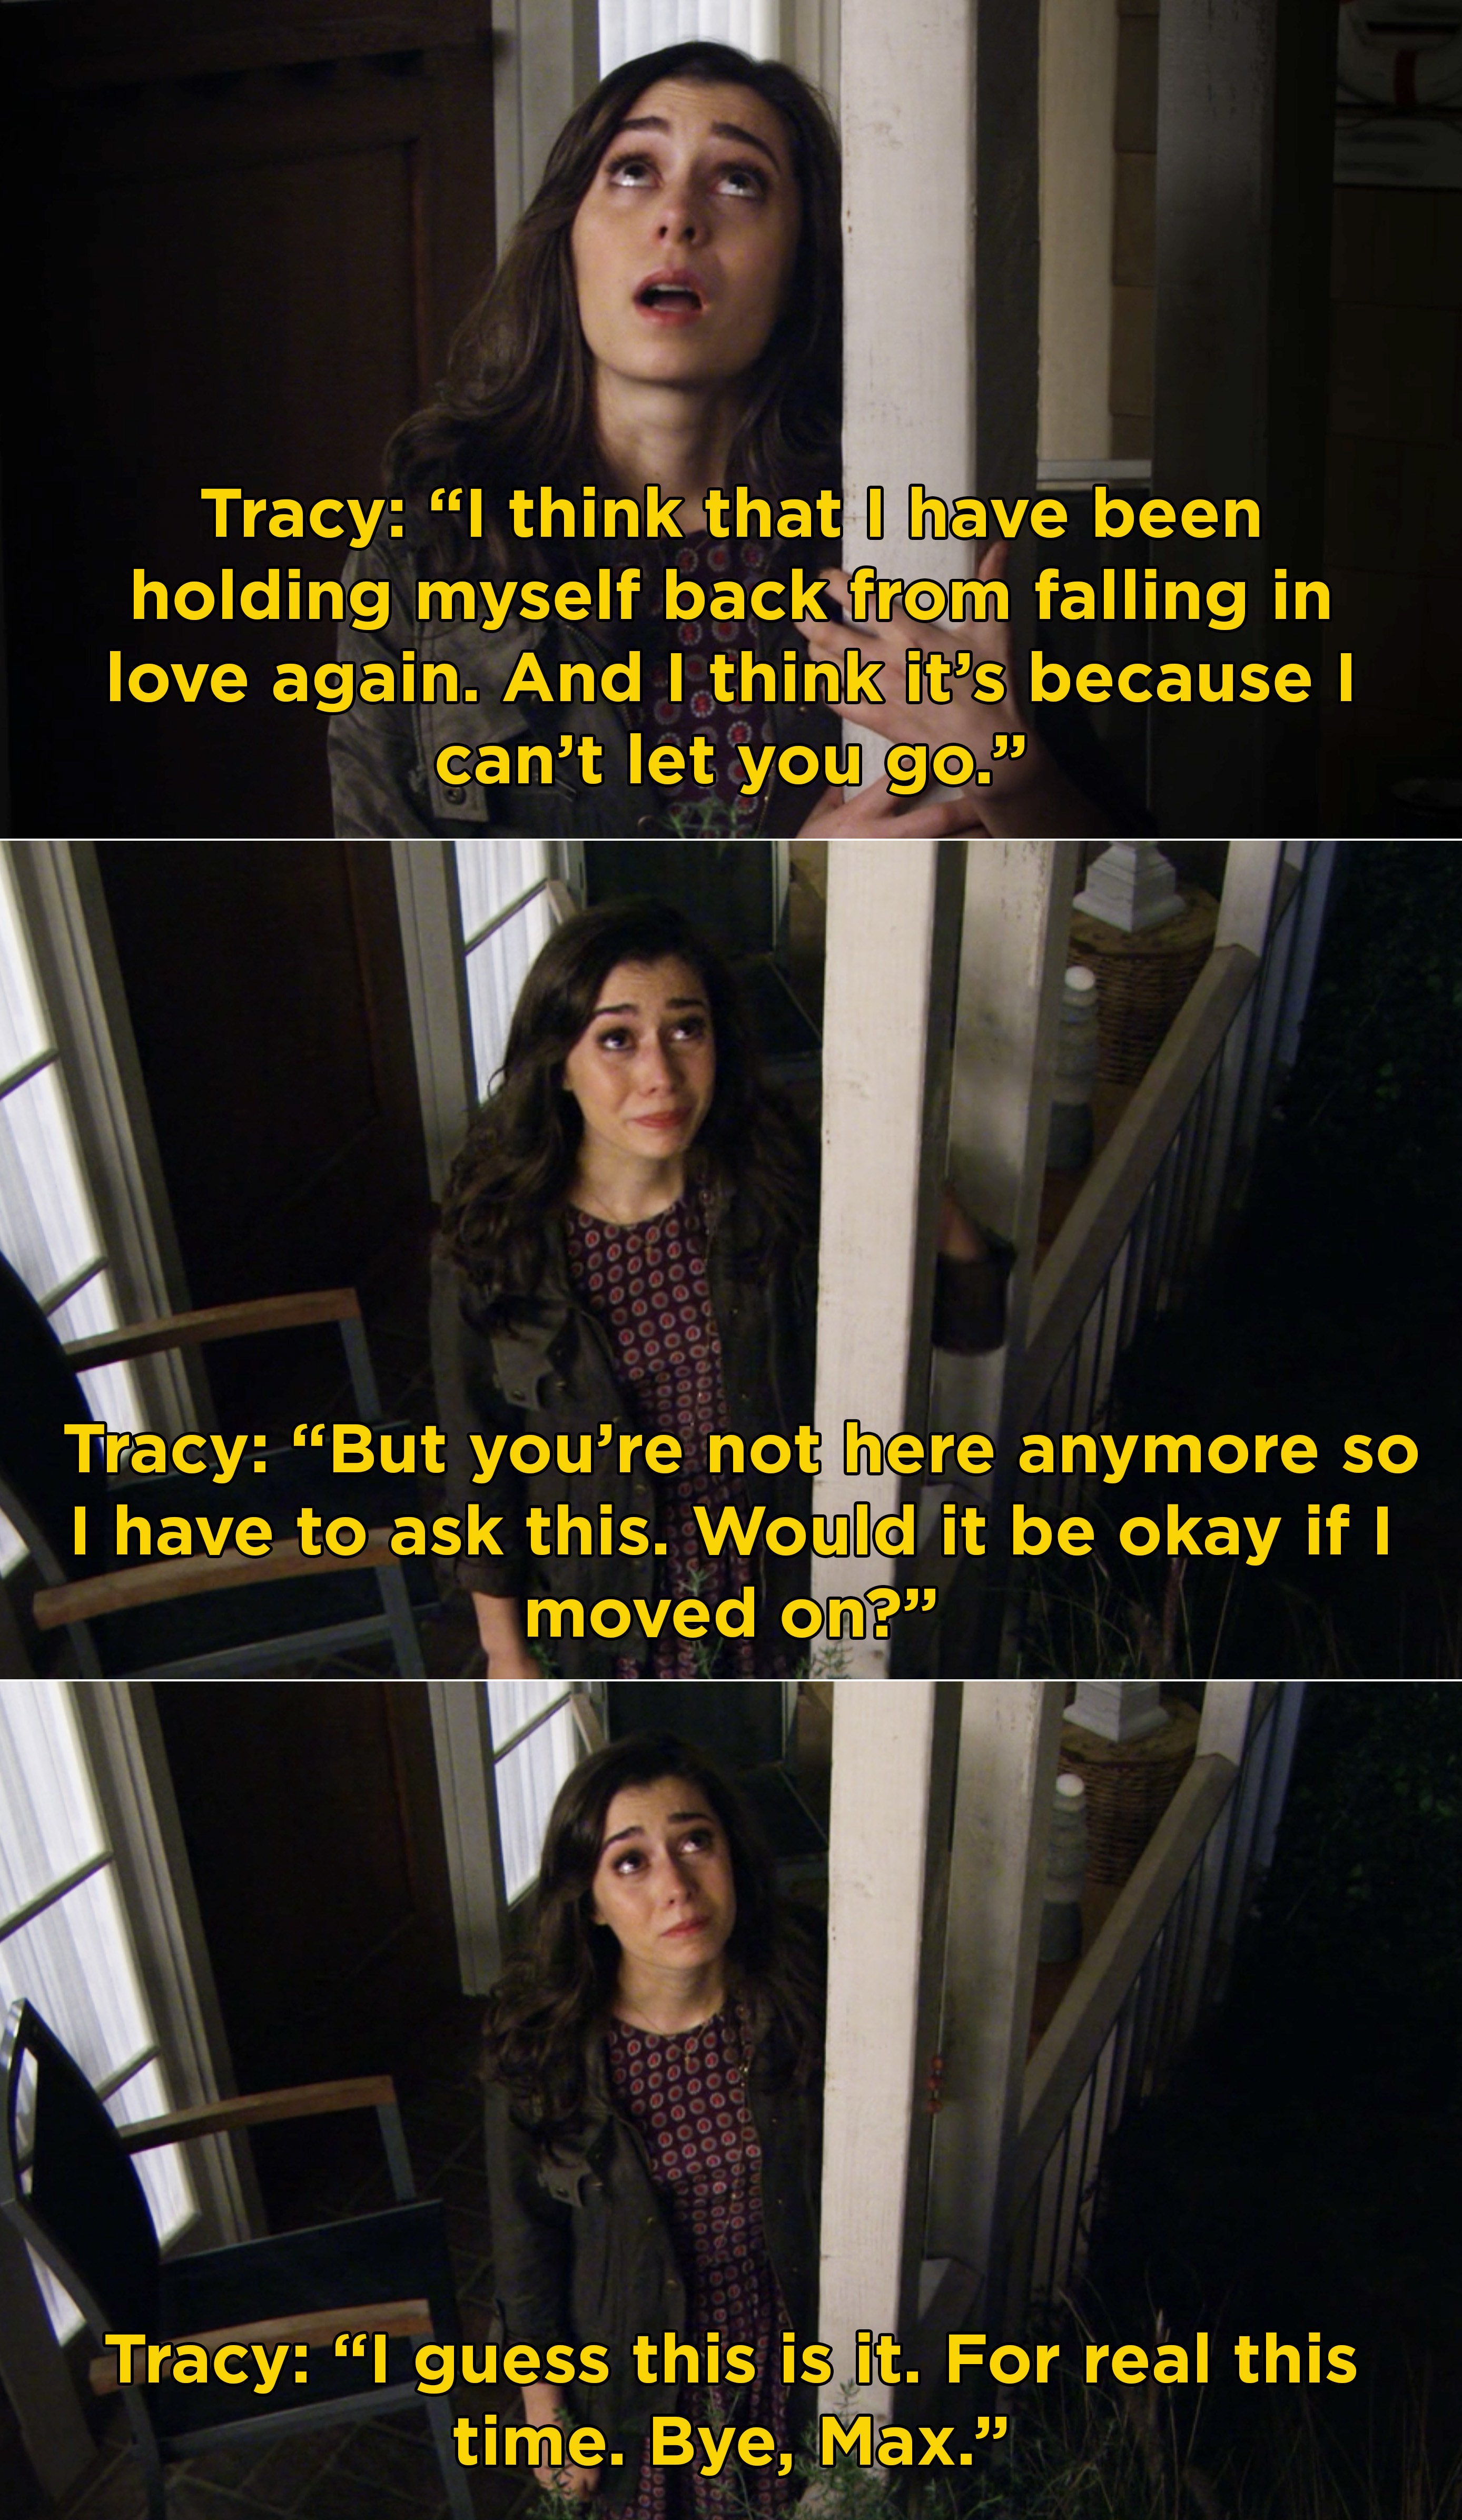 Tracy saying goodbye to Max after telling him she's going to move on and try to find love again